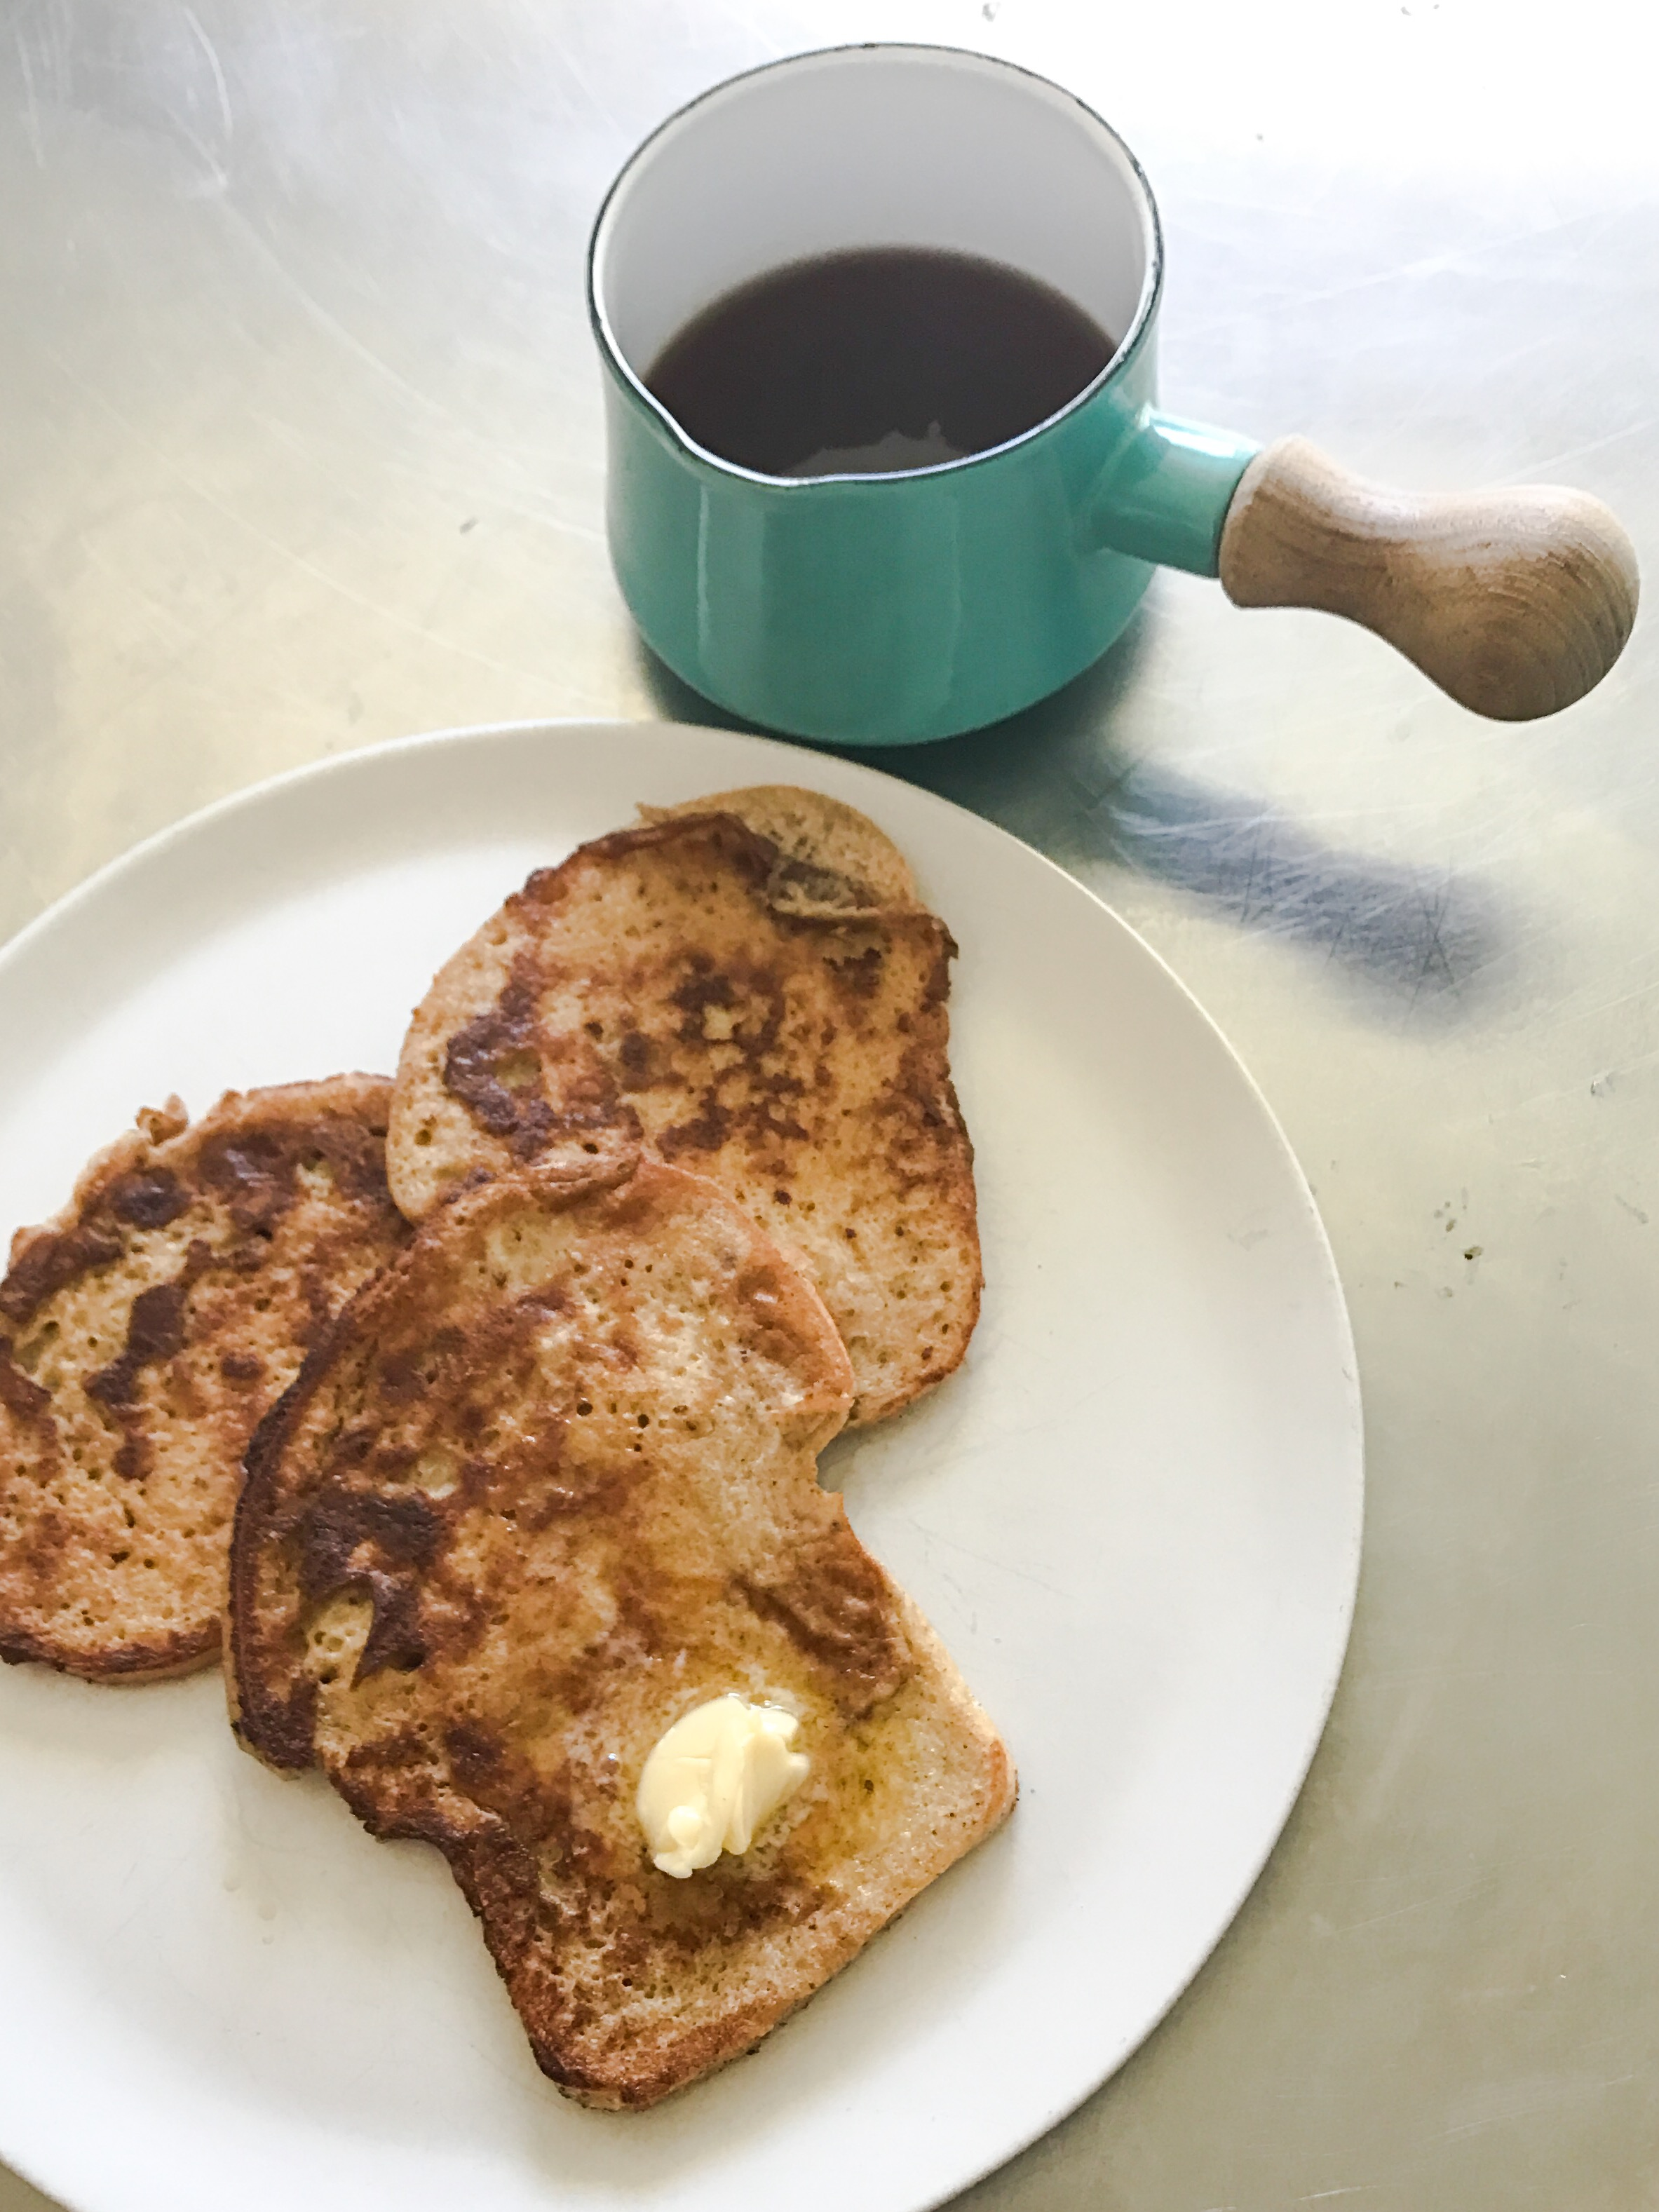 KETO RECIPE: KETO FRENCH TOAST by Jen Fisch via Keto In The City